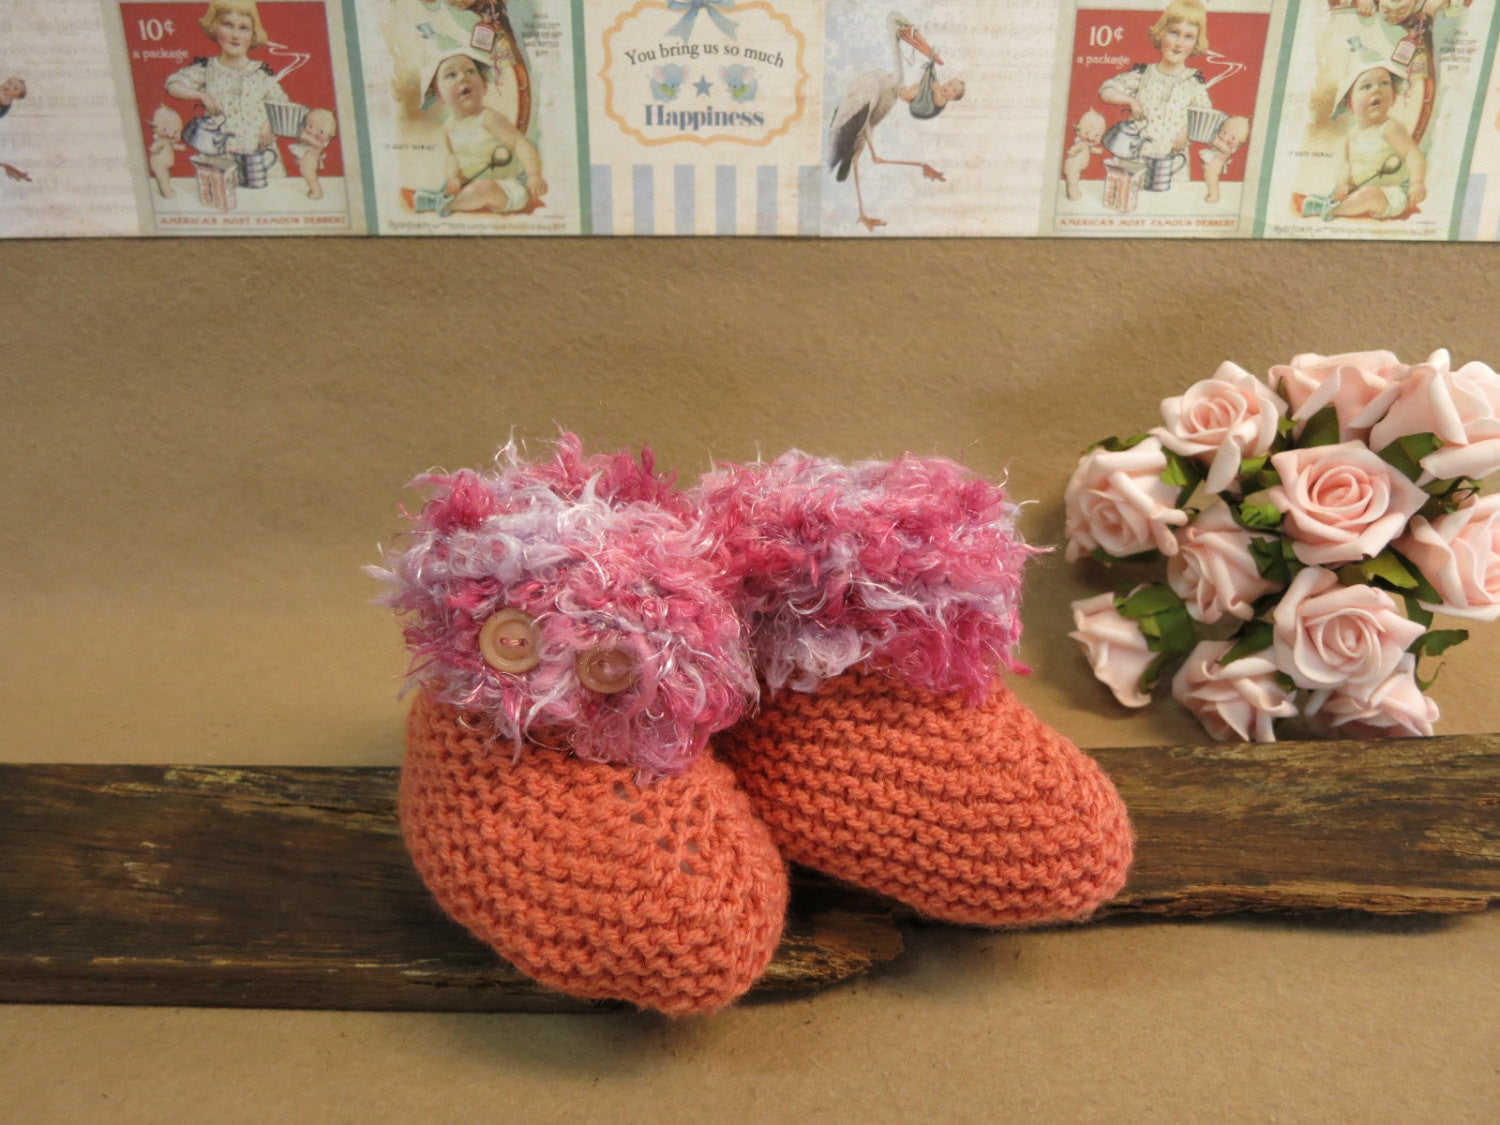 Clearance-Sale-Purple-Pink-and-Orange-Knitted-Slippers-Nchanted-Gifts